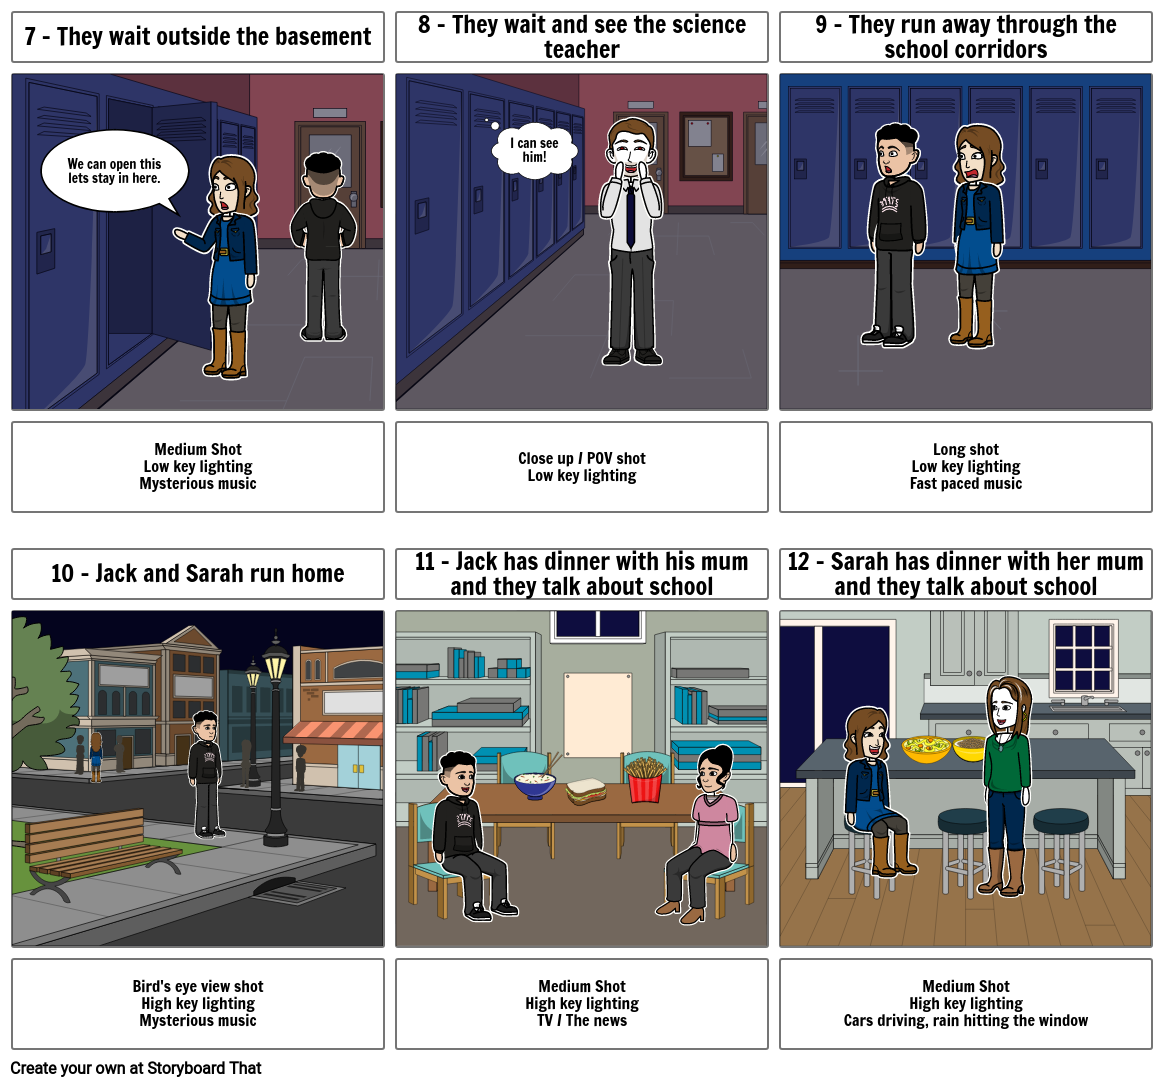 Storyboard 2 - Townville High - James Gower